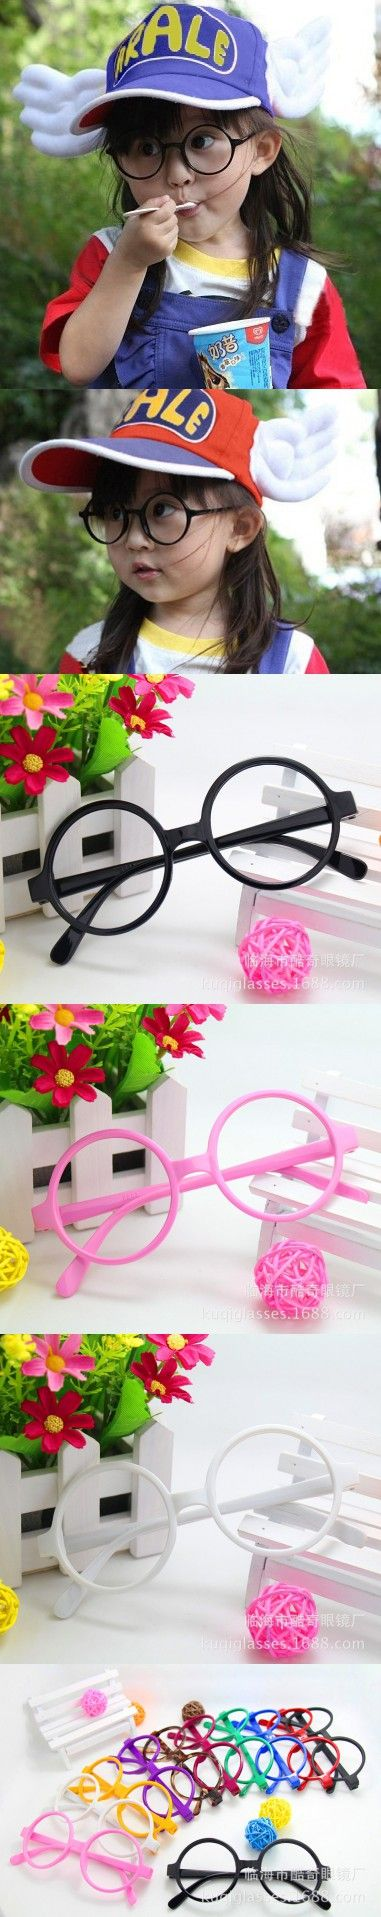 Baby Kids Sunglasses Infants Eyeglasses Spetacles Goggles Boy Girls Eyewear Children Sunglass Oculos De Sol criancaes